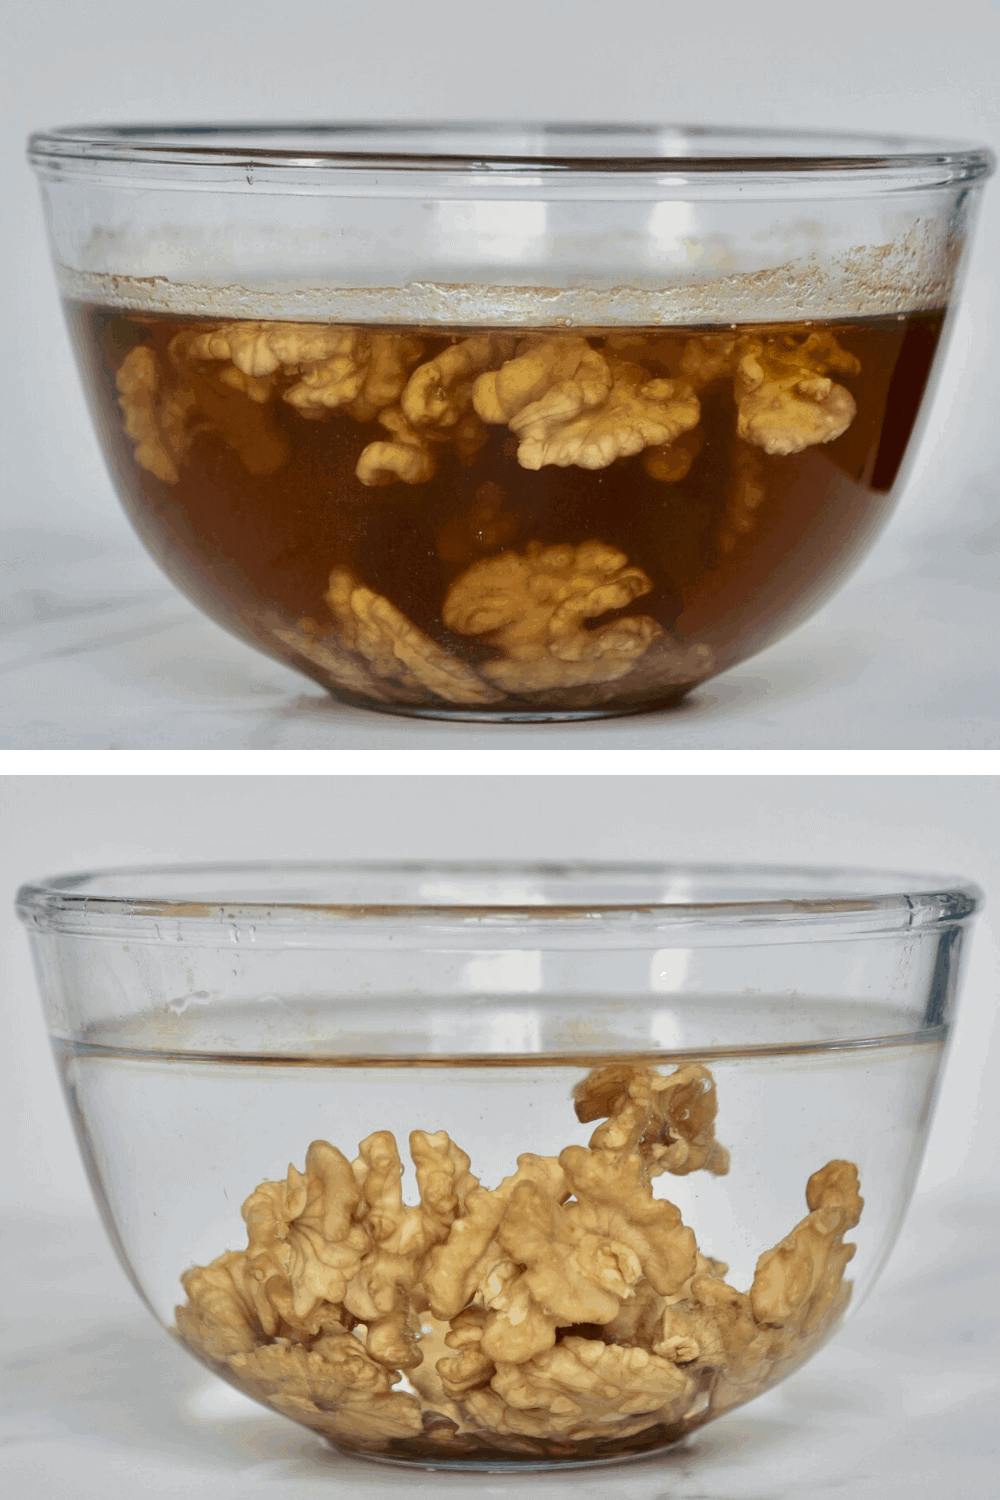 Soaked walnuts for dairy-free milk